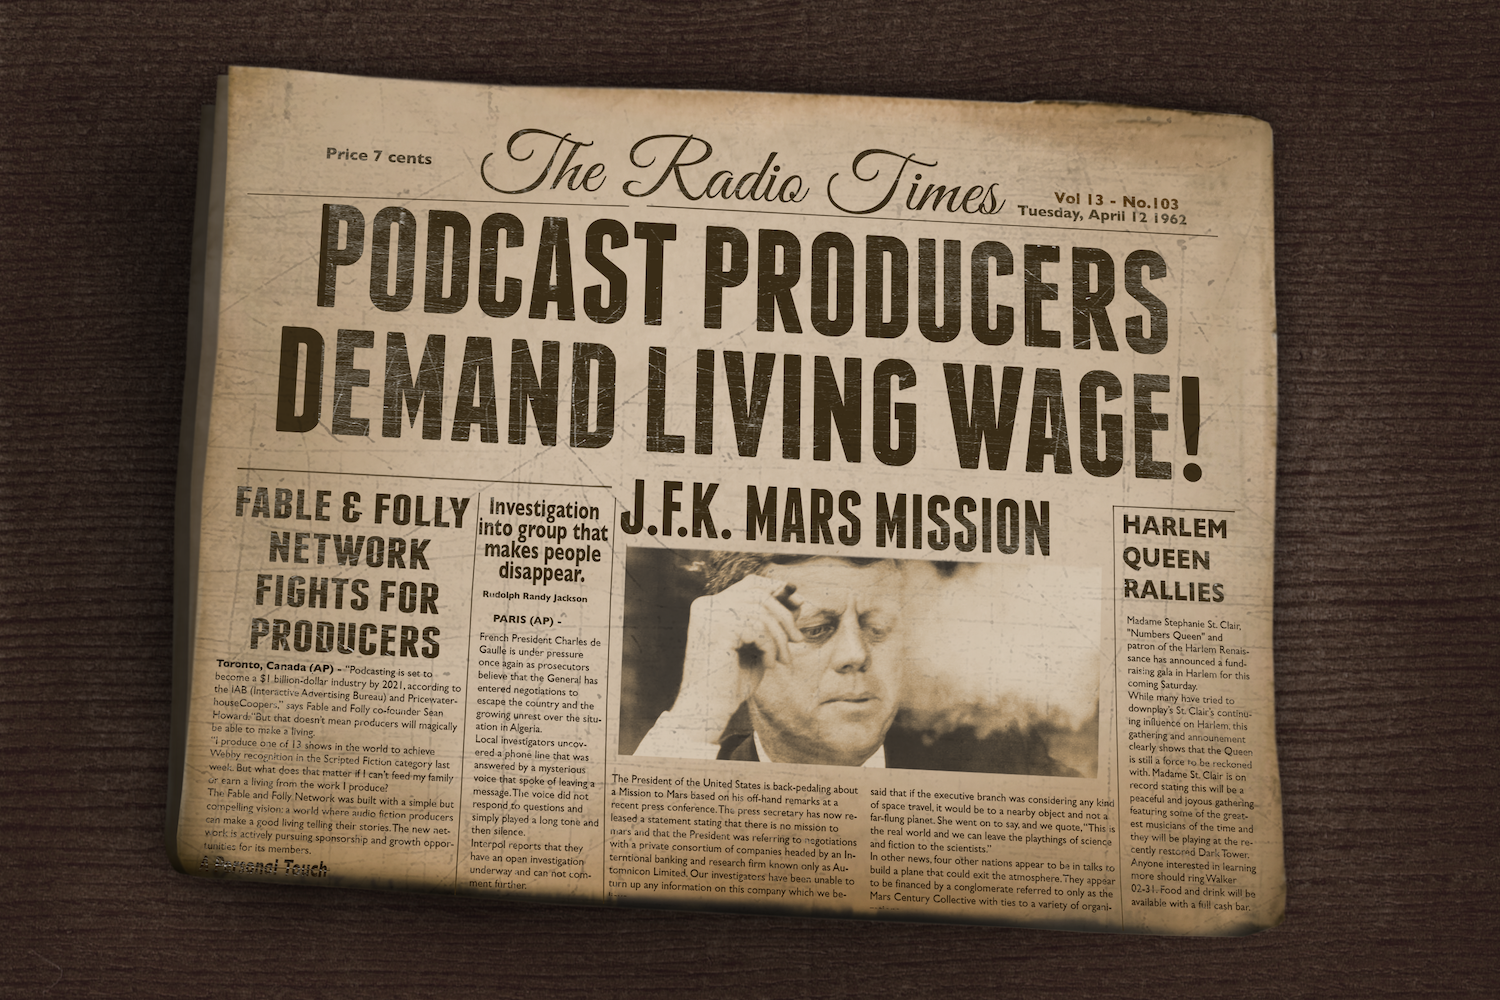 Vintage newspaper with headline Podcast Producers Demand Living Wages